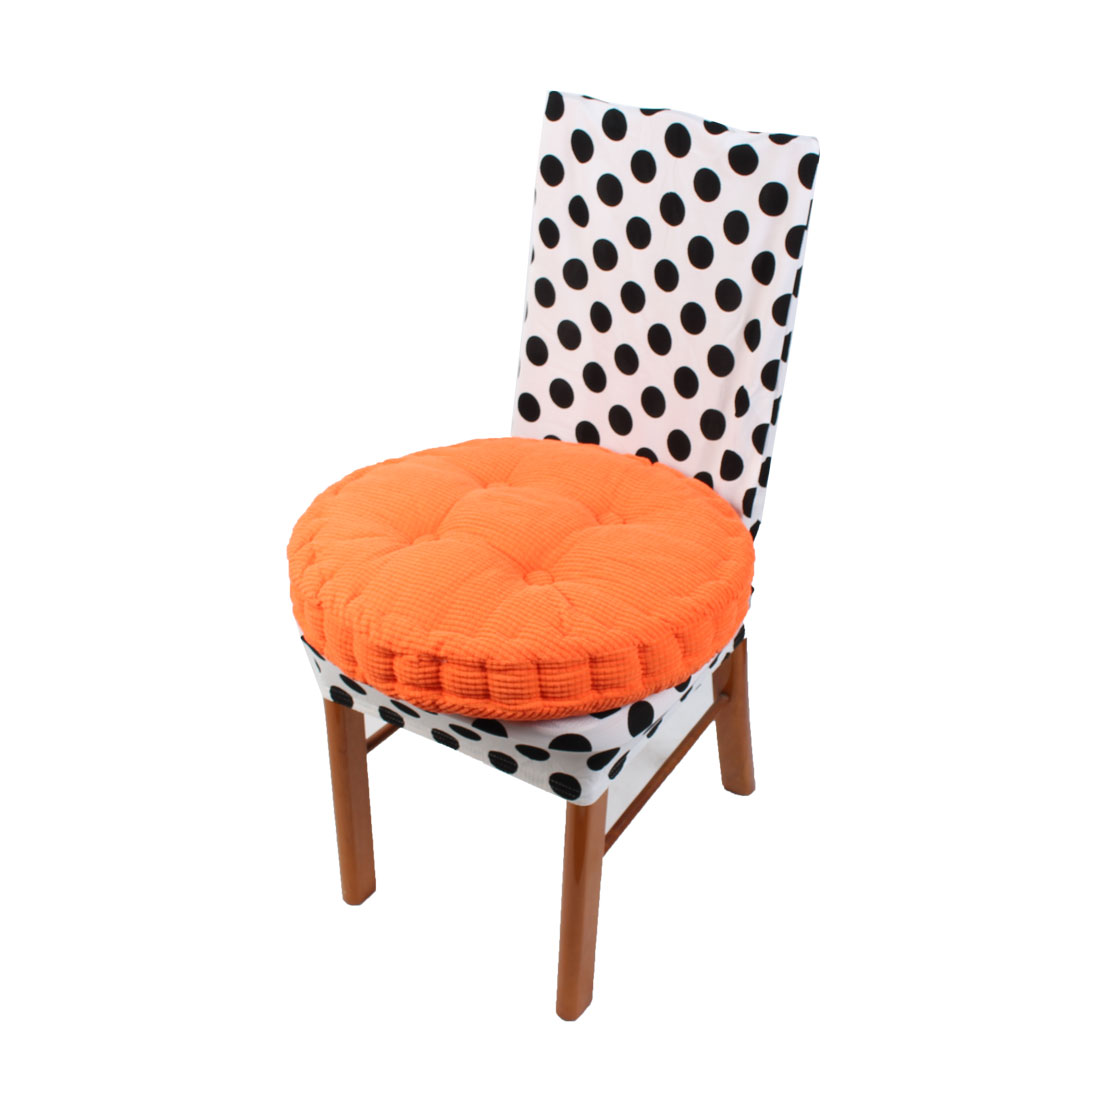 Garden Patio Round Shaped Thickened Seat Cushion Chair Pad